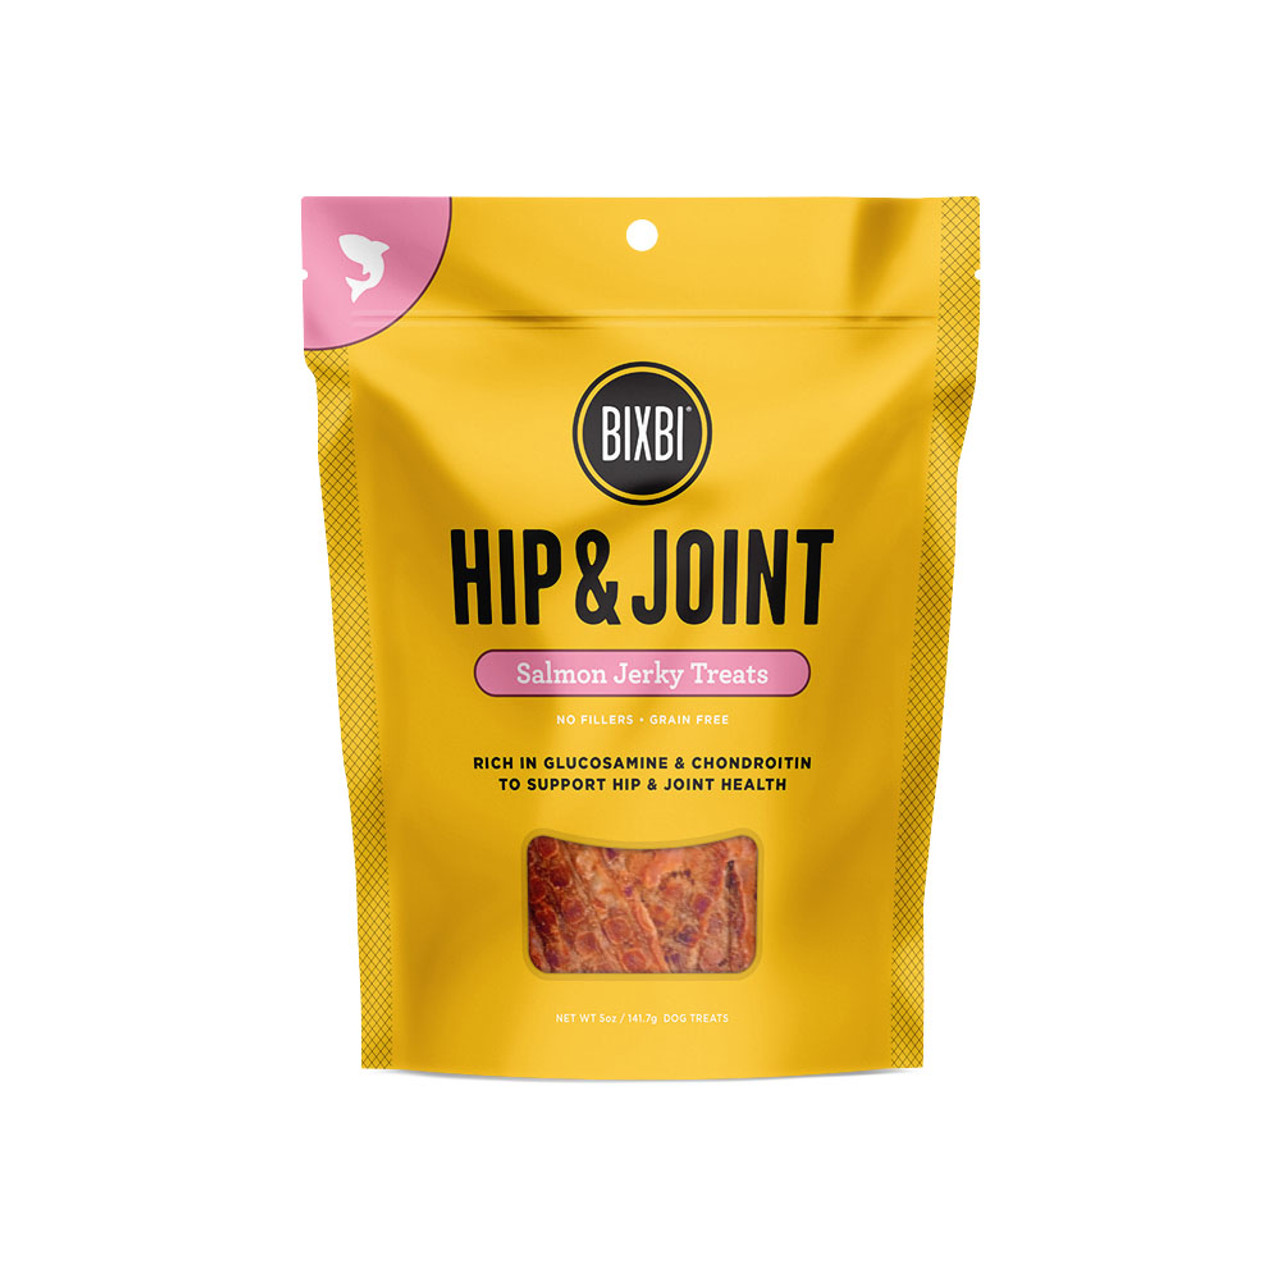 Bixbi Hip & Joint Salmon Jerky Dog Treats